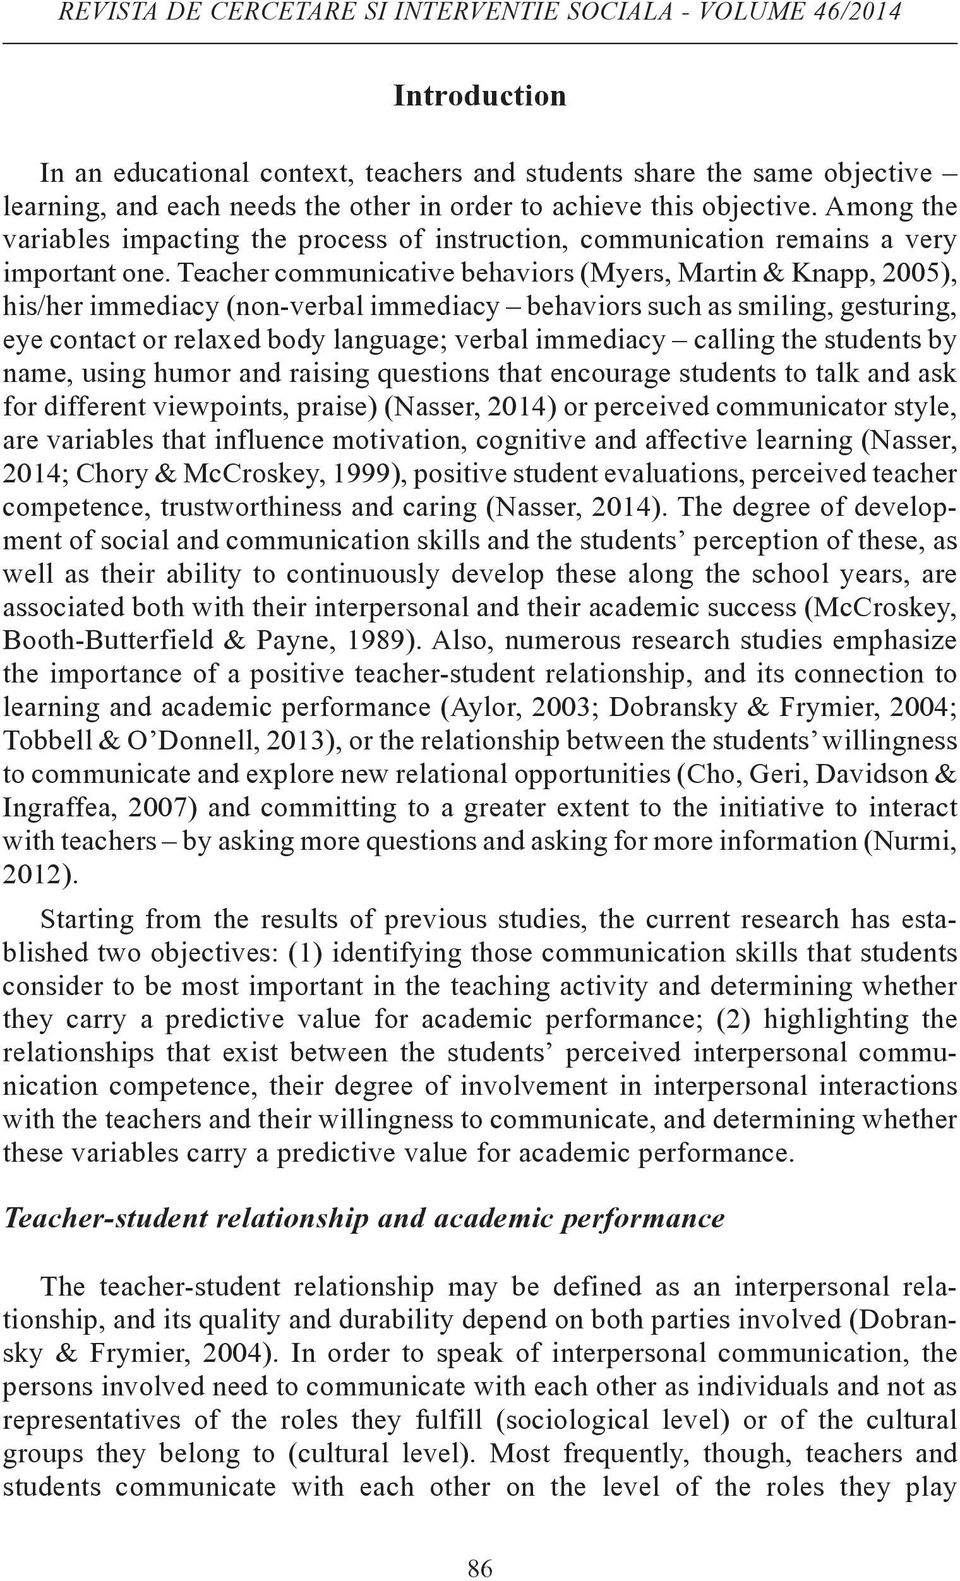 Teacher communicative behaviors (Myers, Martin & Knapp, 2005), his/her immediacy (non-verbal immediacy behaviors such as smiling, gesturing, eye contact or relaxed body language; verbal immediacy